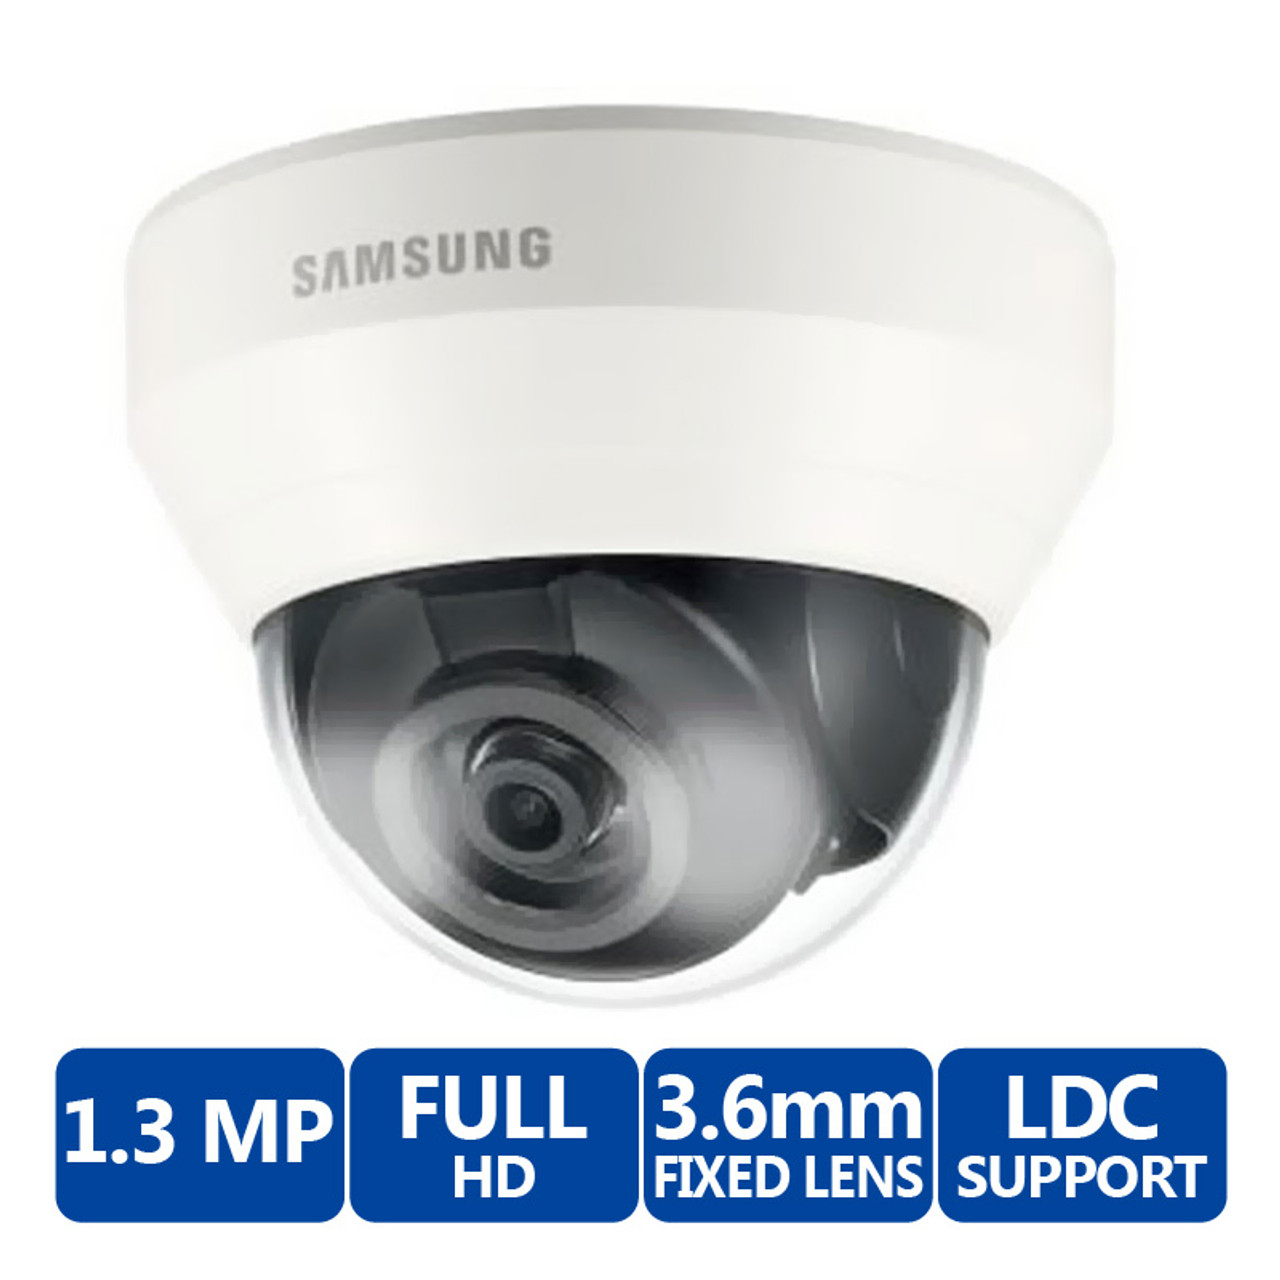 Samsung WiseNet SND-L5013 1.3MP HD Network PoE Dome Camera with 3.6mm Lens